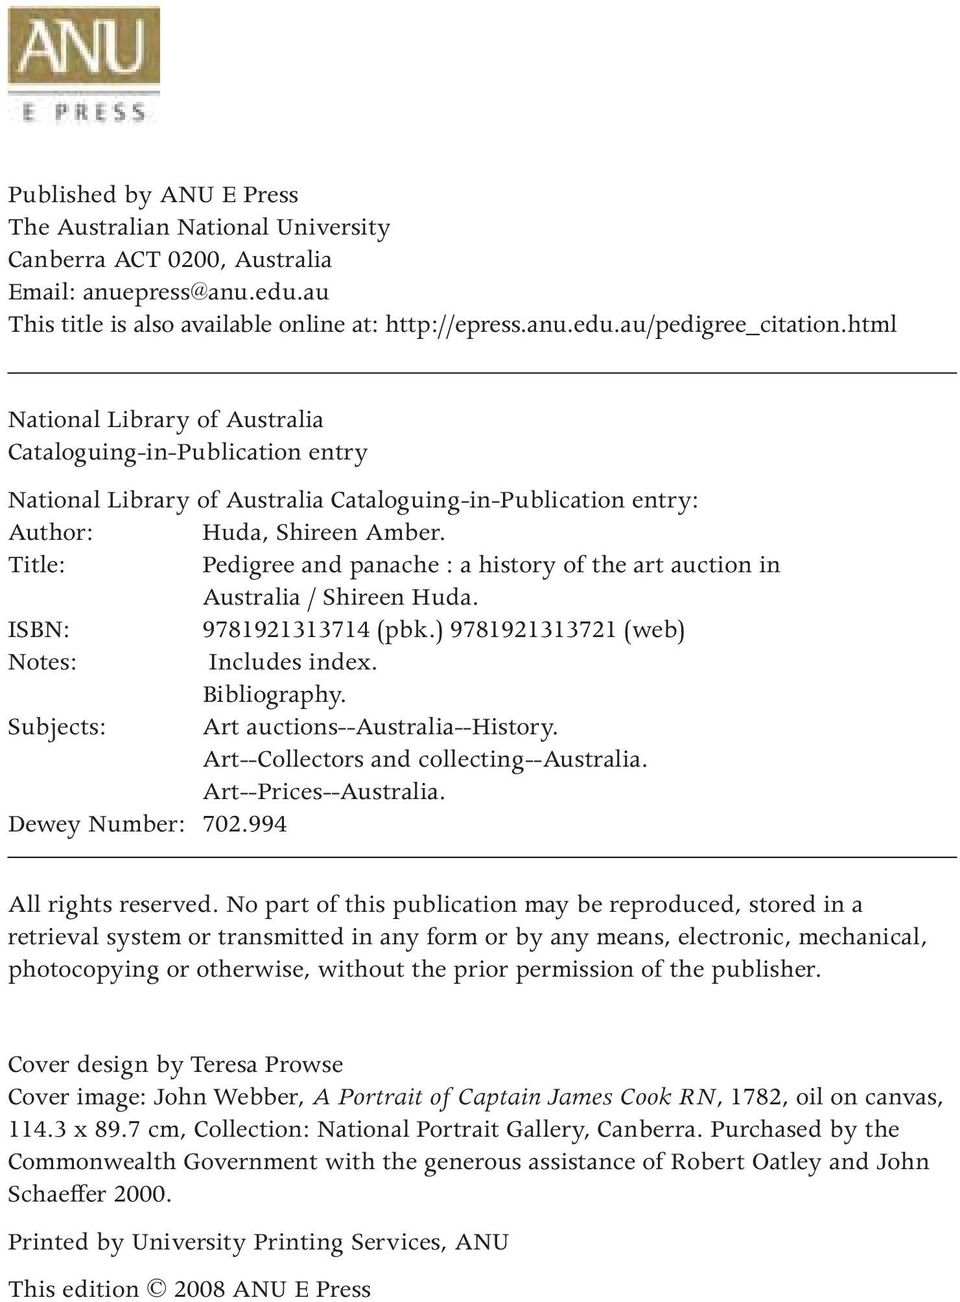 Pedigree And Panache A History Of The Art Auction In Australia Pdf Free Download